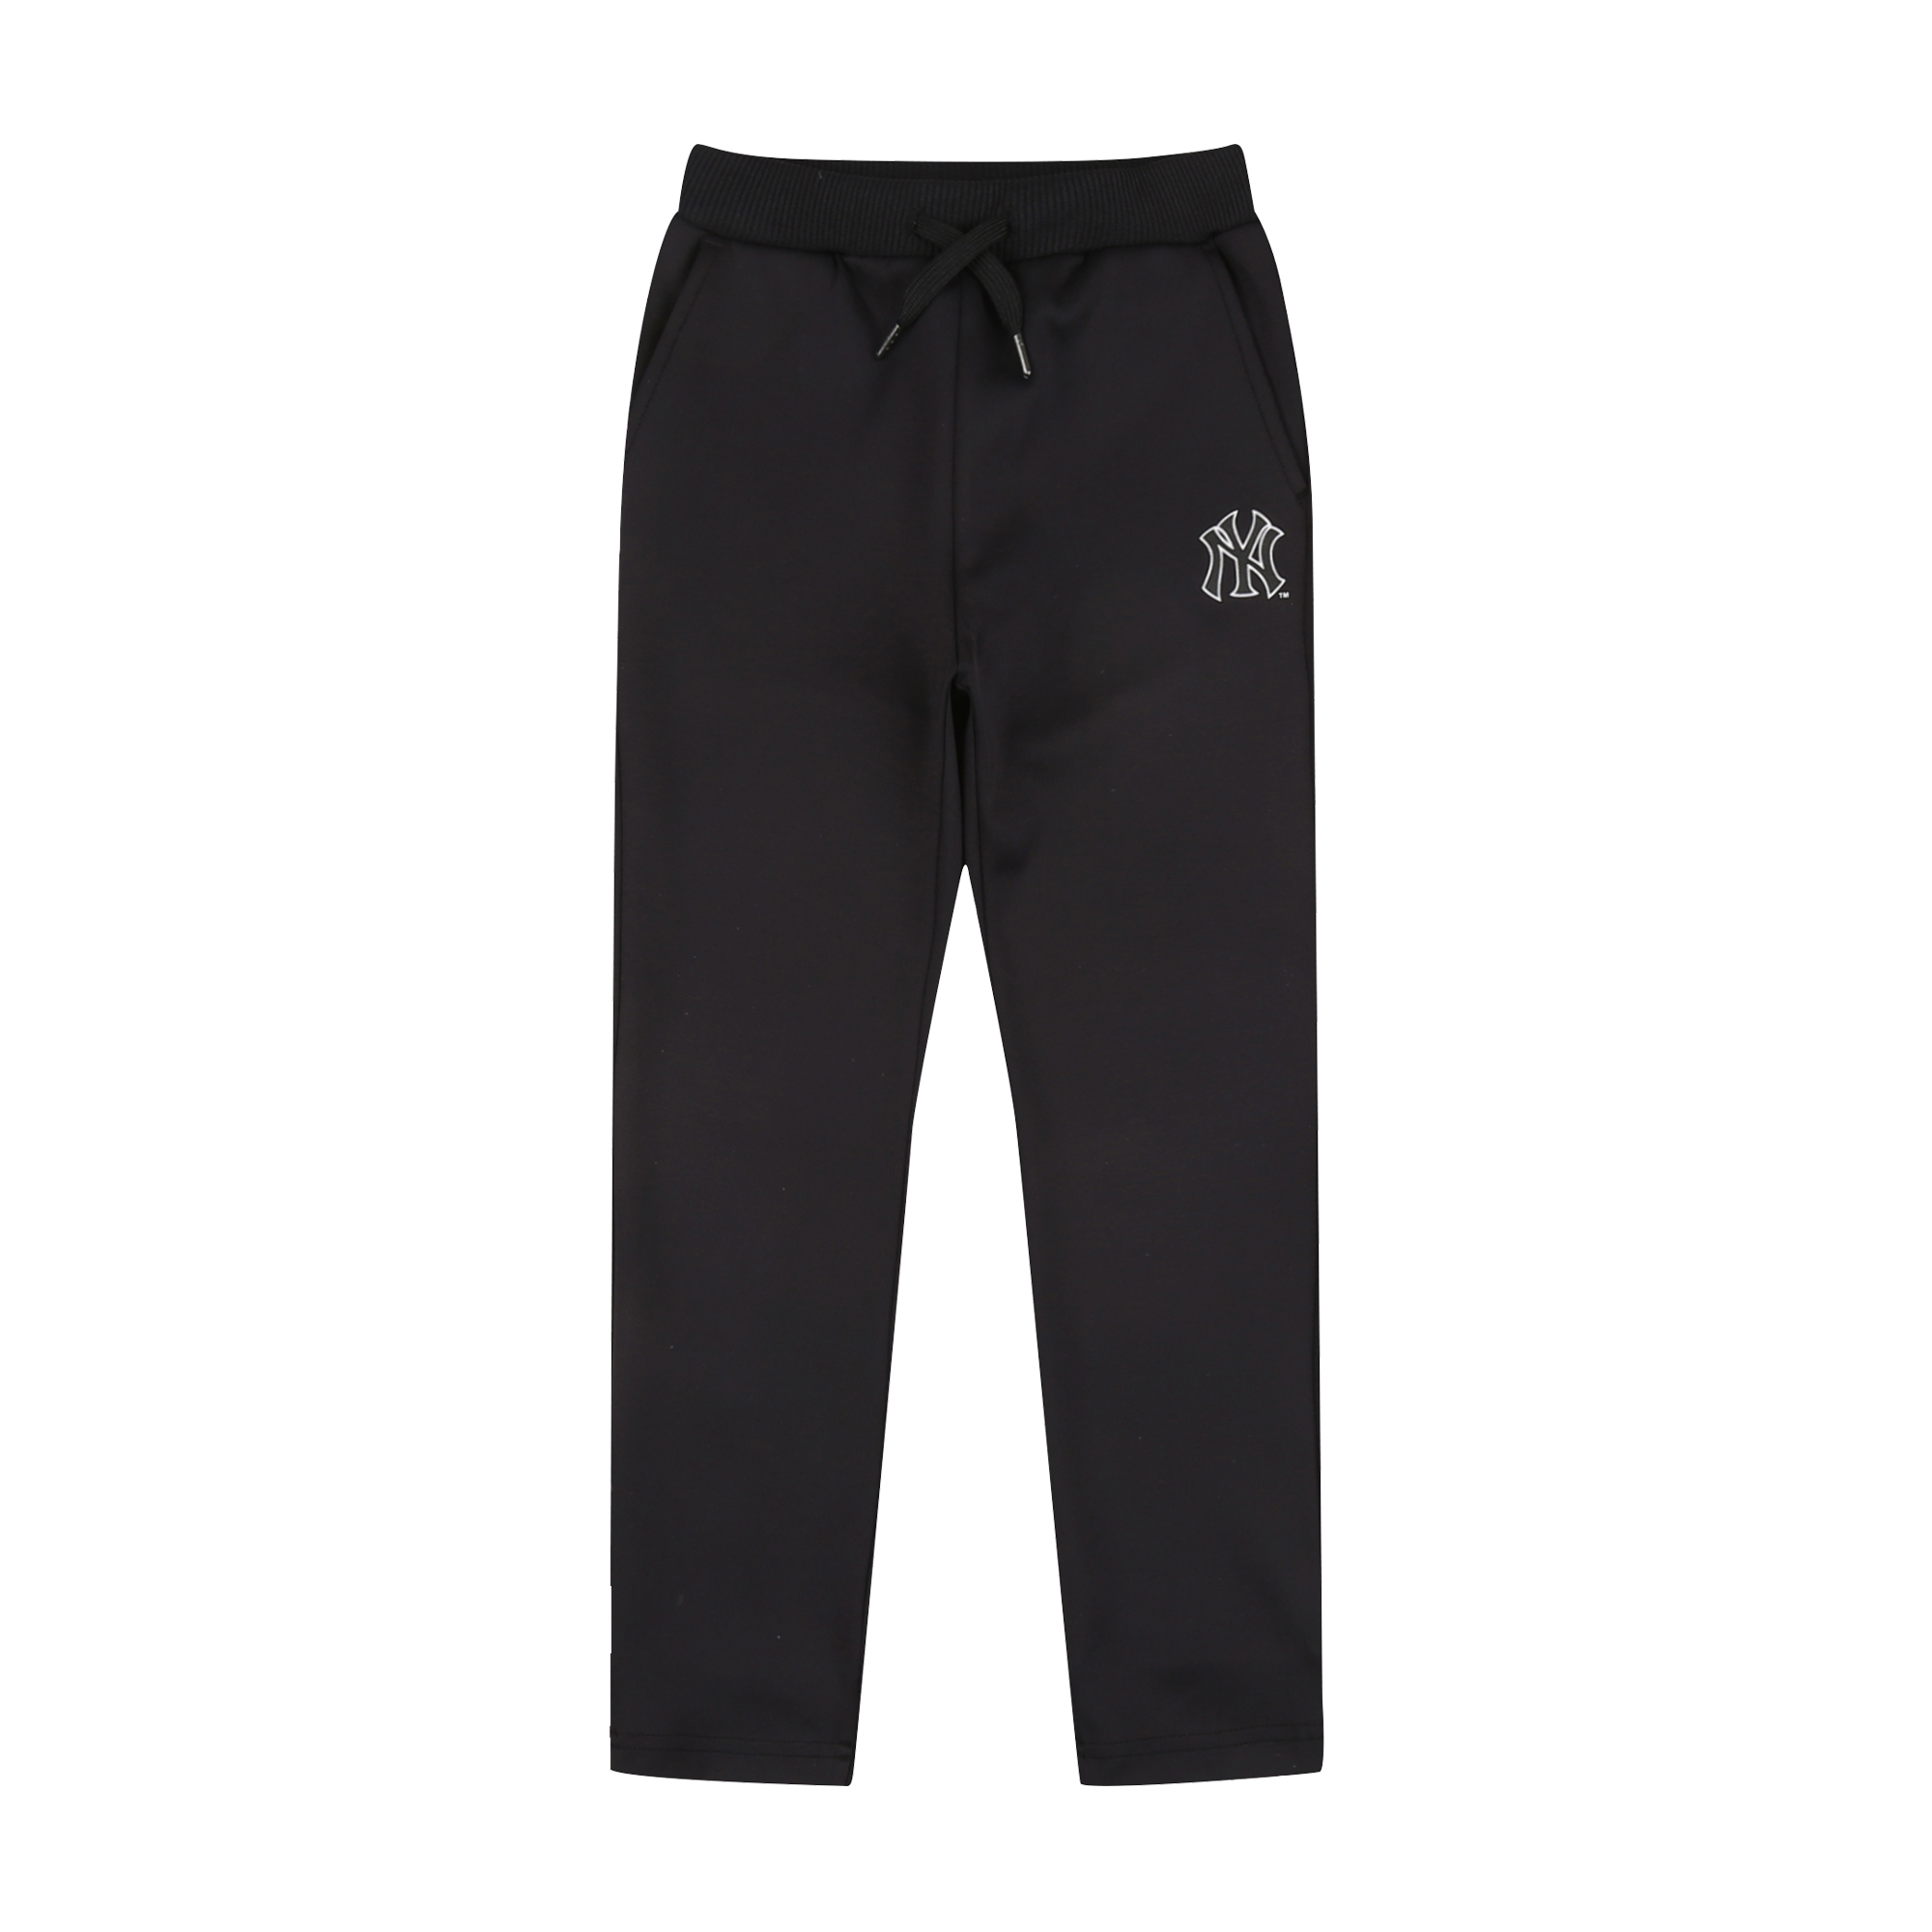 NEW YORK YANKEES UNISEX LOGO POLY SETUP PANTS